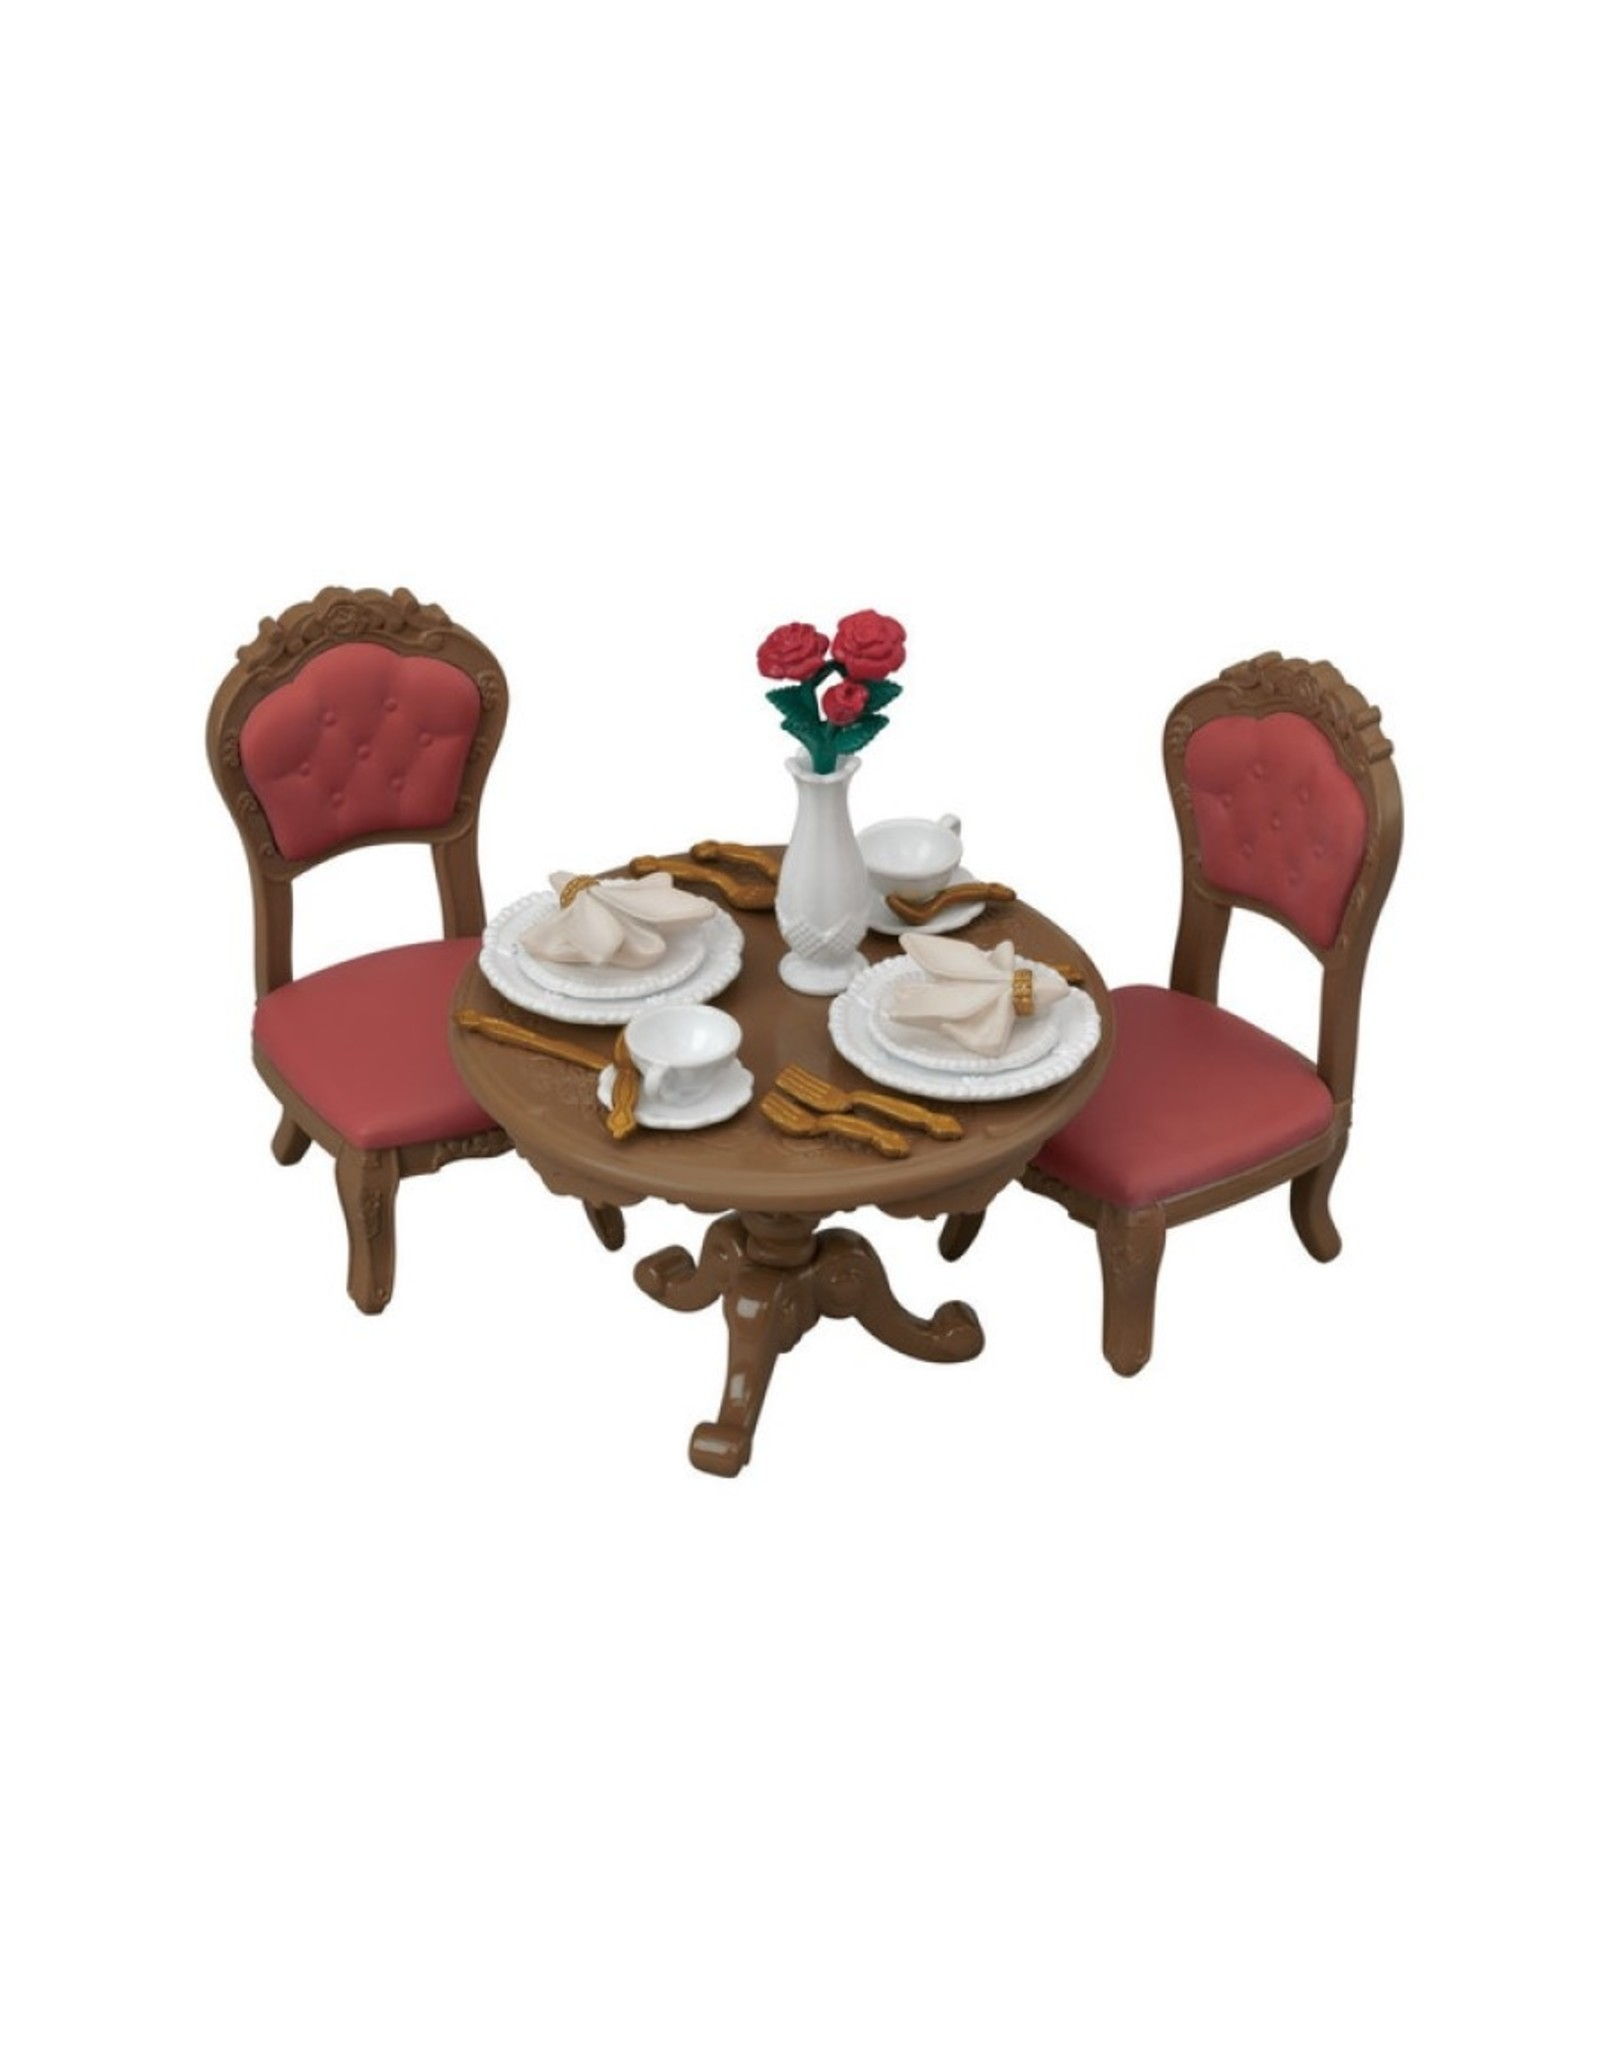 Calico Critters CC Chic Dining Table Set